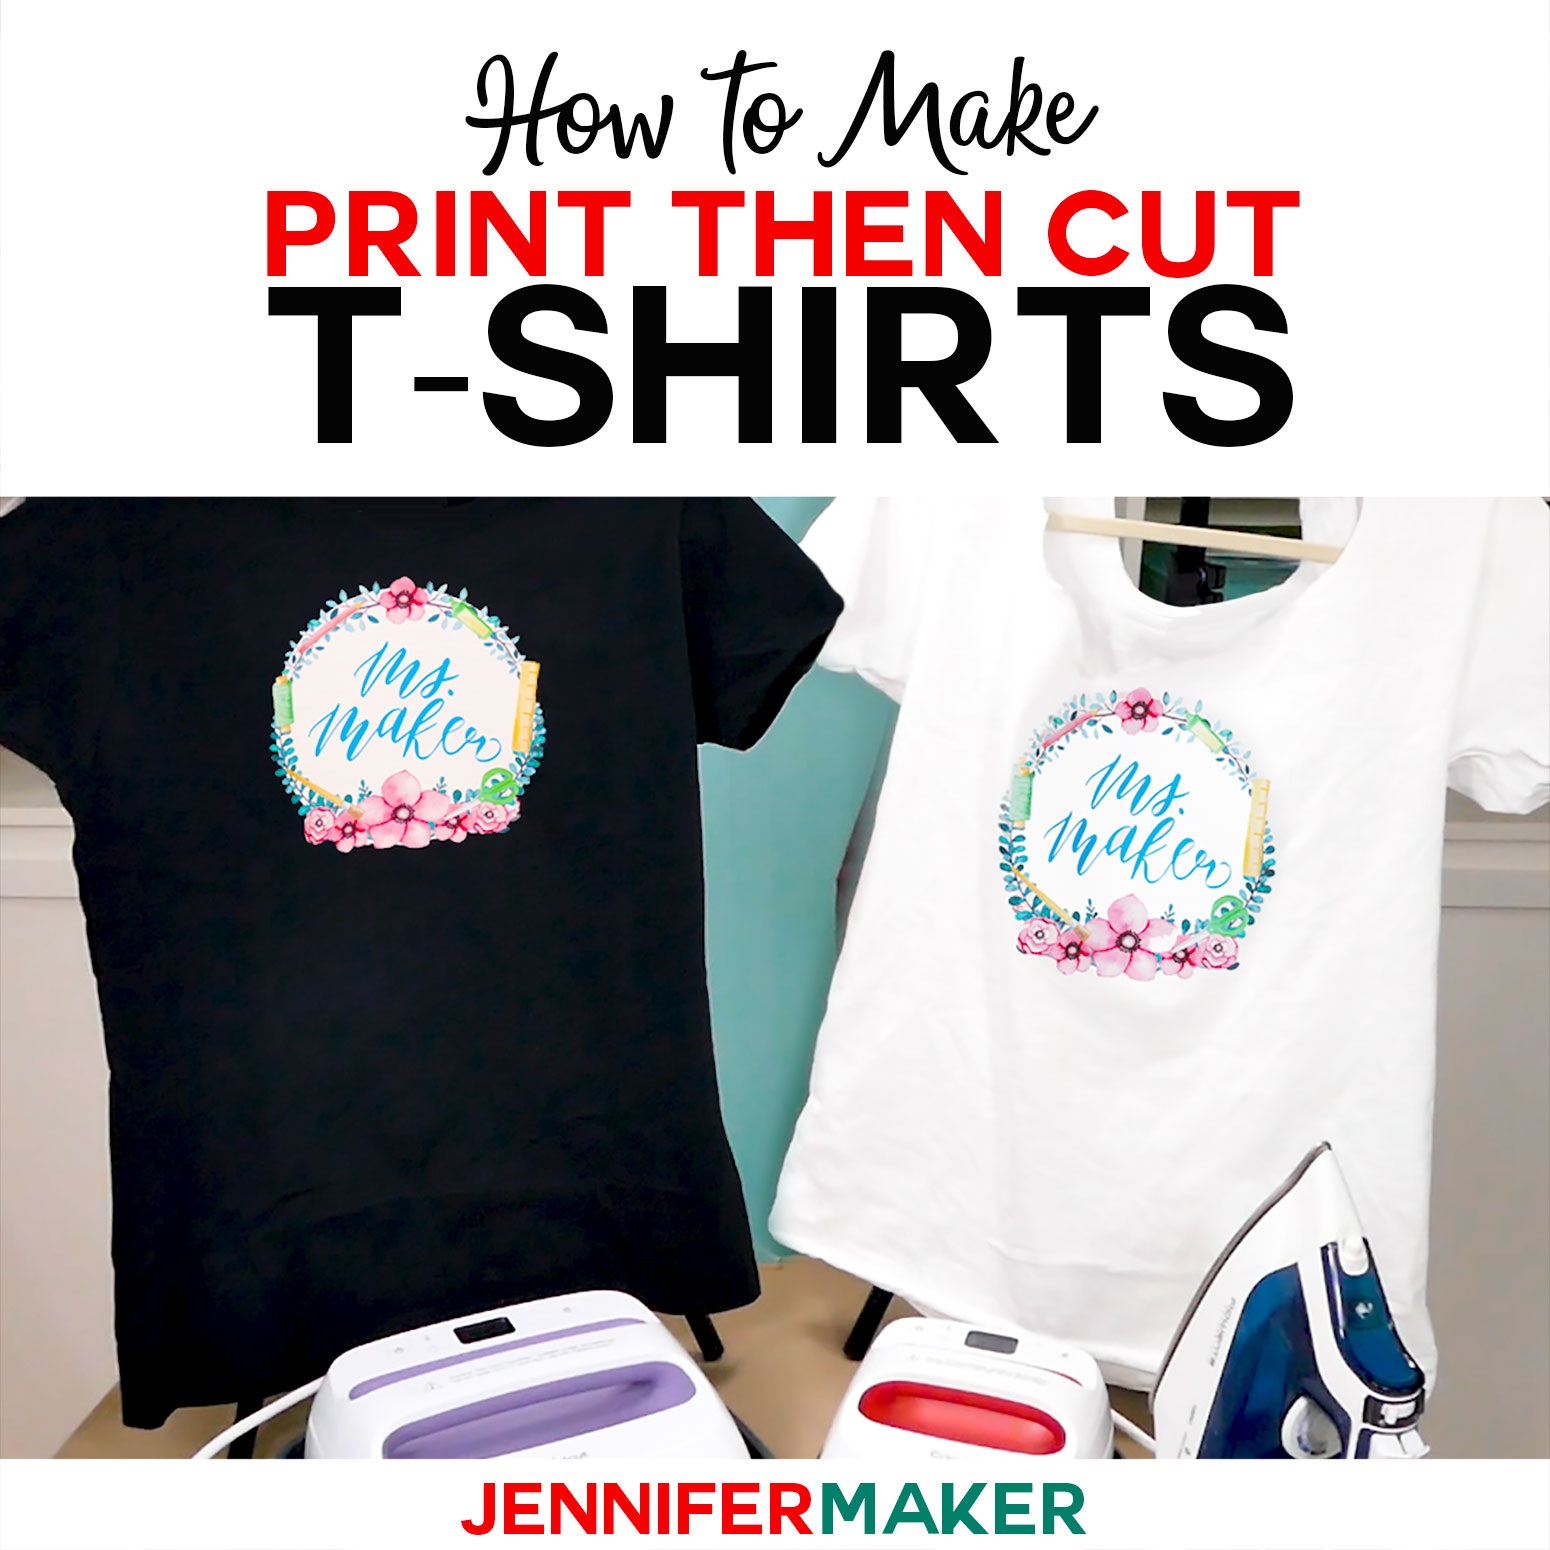 photograph relating to How to Use Printable Htv named Print Then Lower Cricut Move T-Shirts - Jennifer Manufacturer